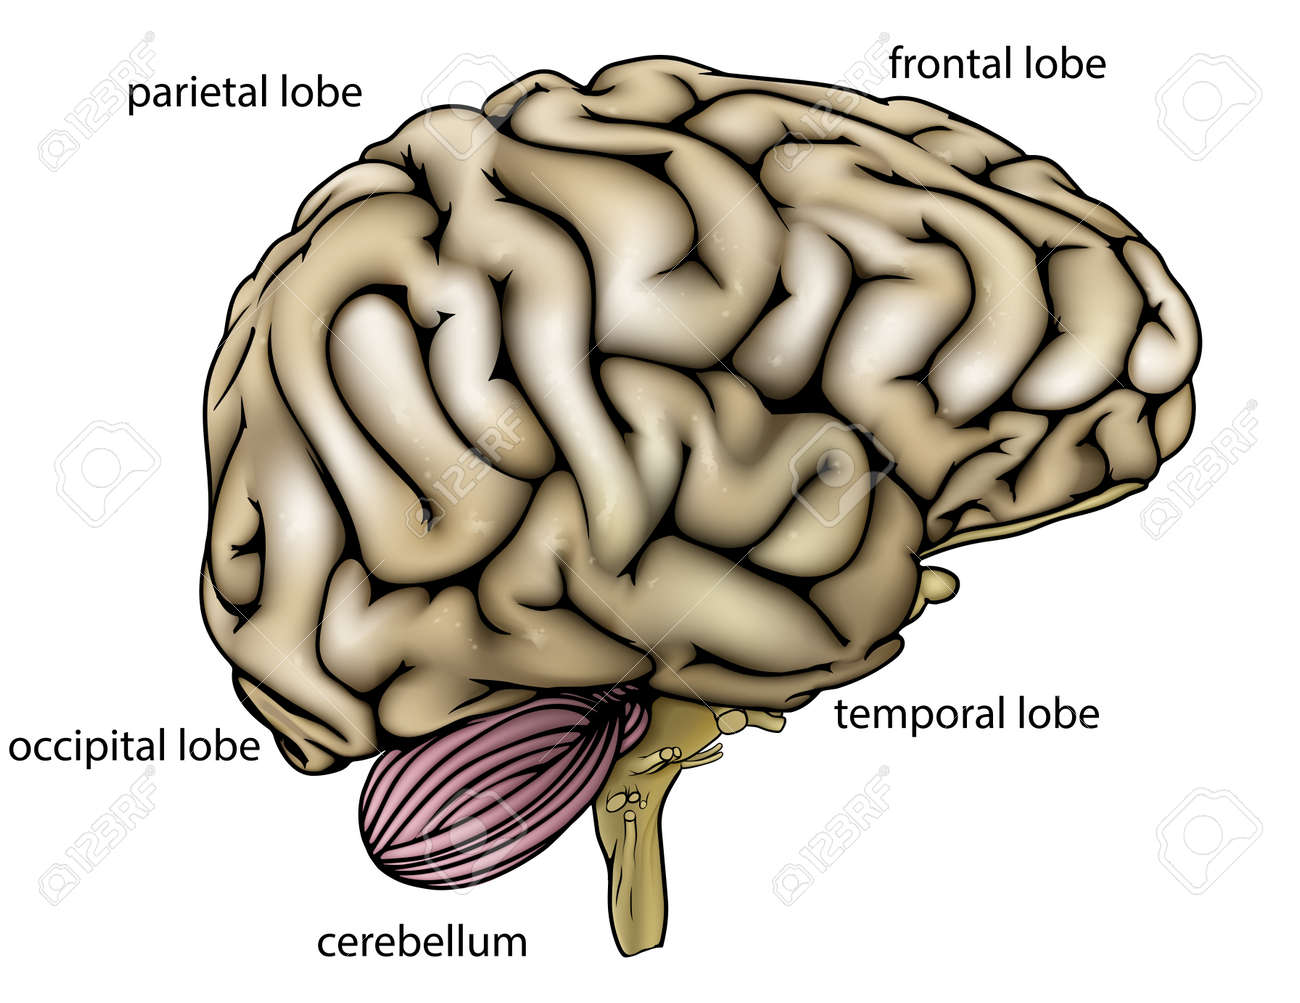 An illustration or anatomy diagram of an anatomically correct an illustration or anatomy diagram of an anatomically correct human brain from the side with different ccuart Images